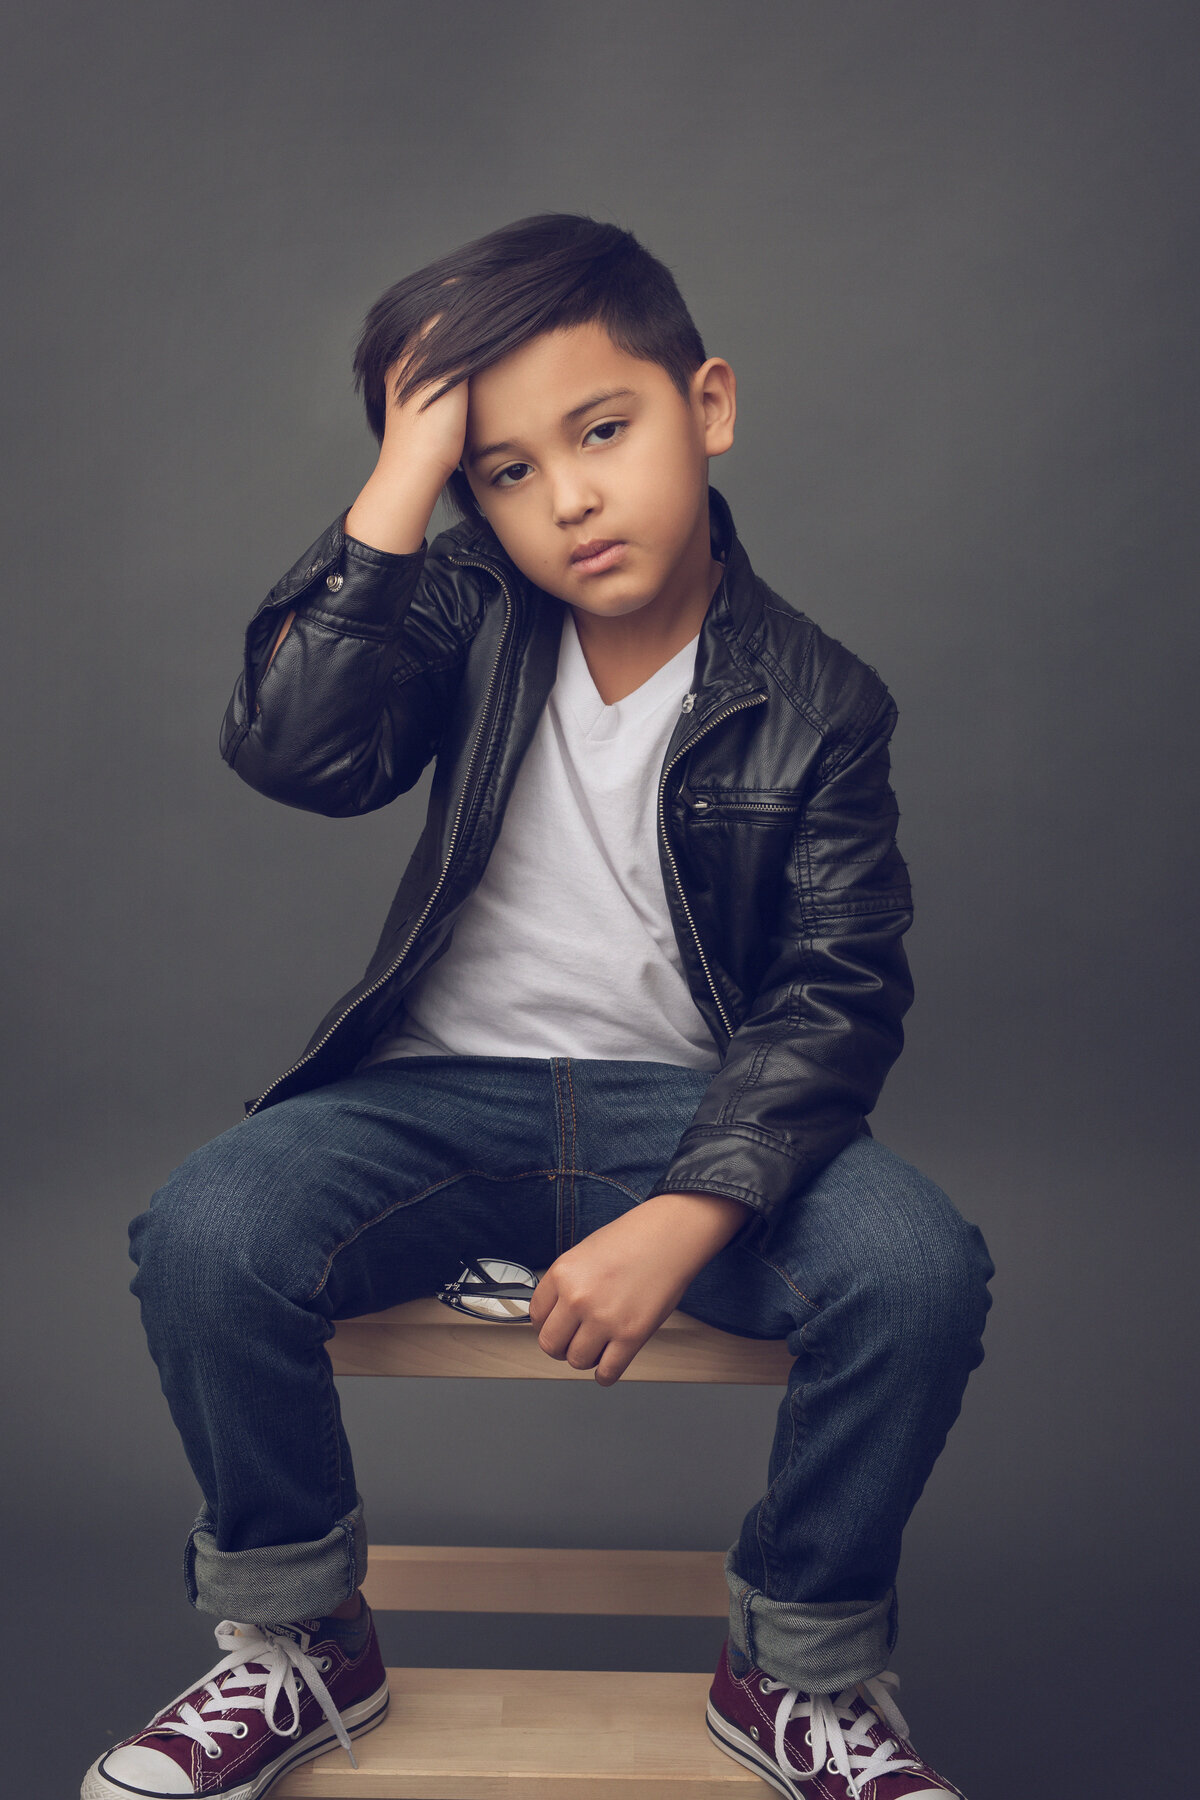 Young boy sitting on a stool, hand in hair, facing the camera. Houston, TX.